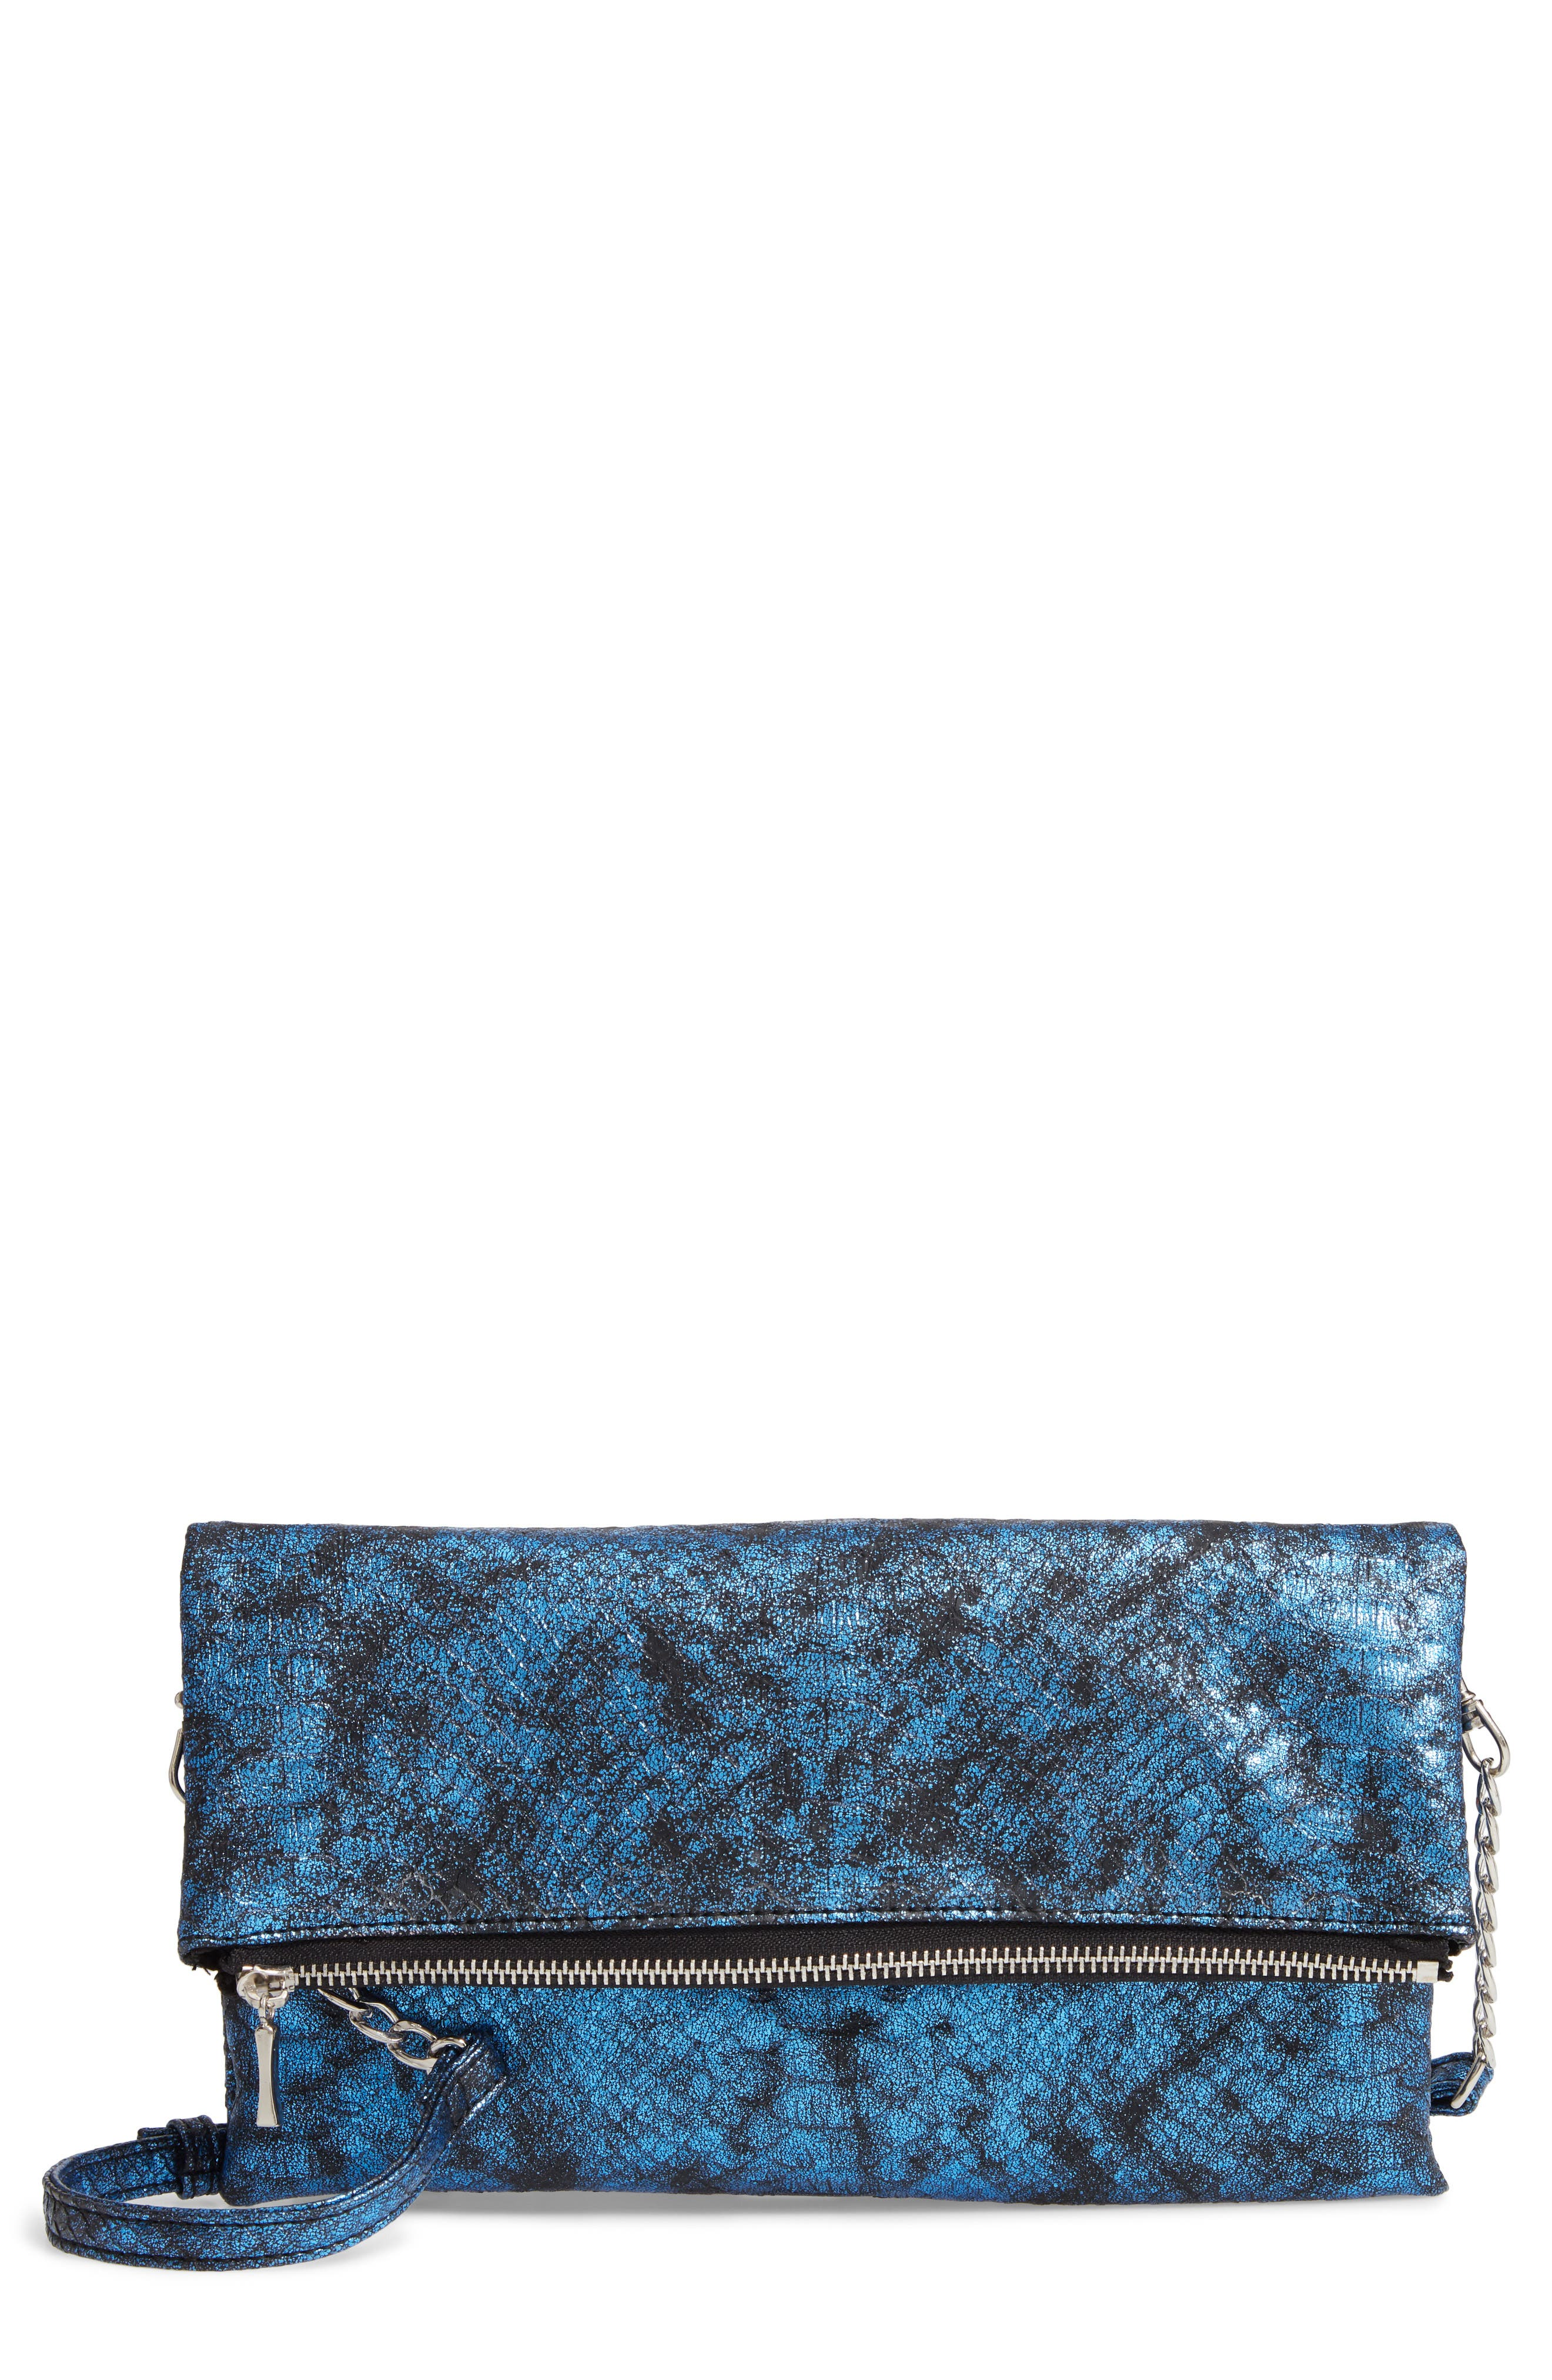 Snake Embossed Faux Leather Clutch,                         Main,                         color, NAVY